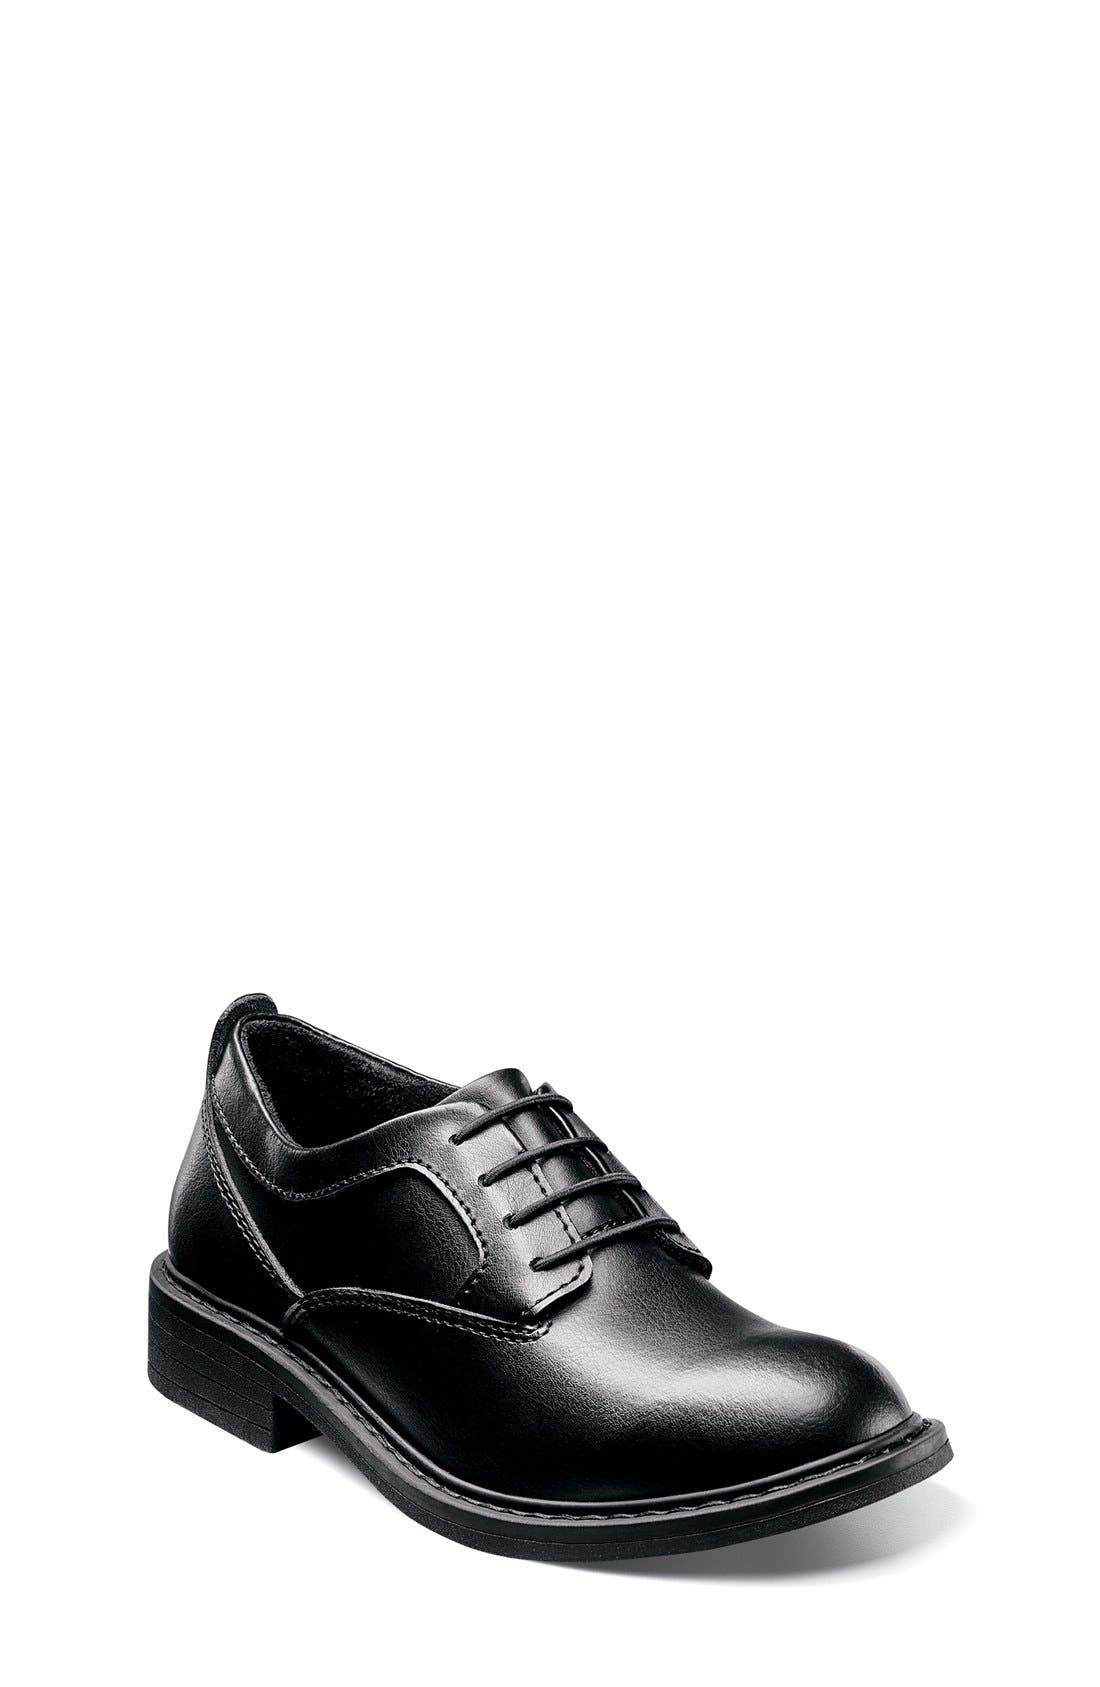 FLORSHEIM Studio Oxford